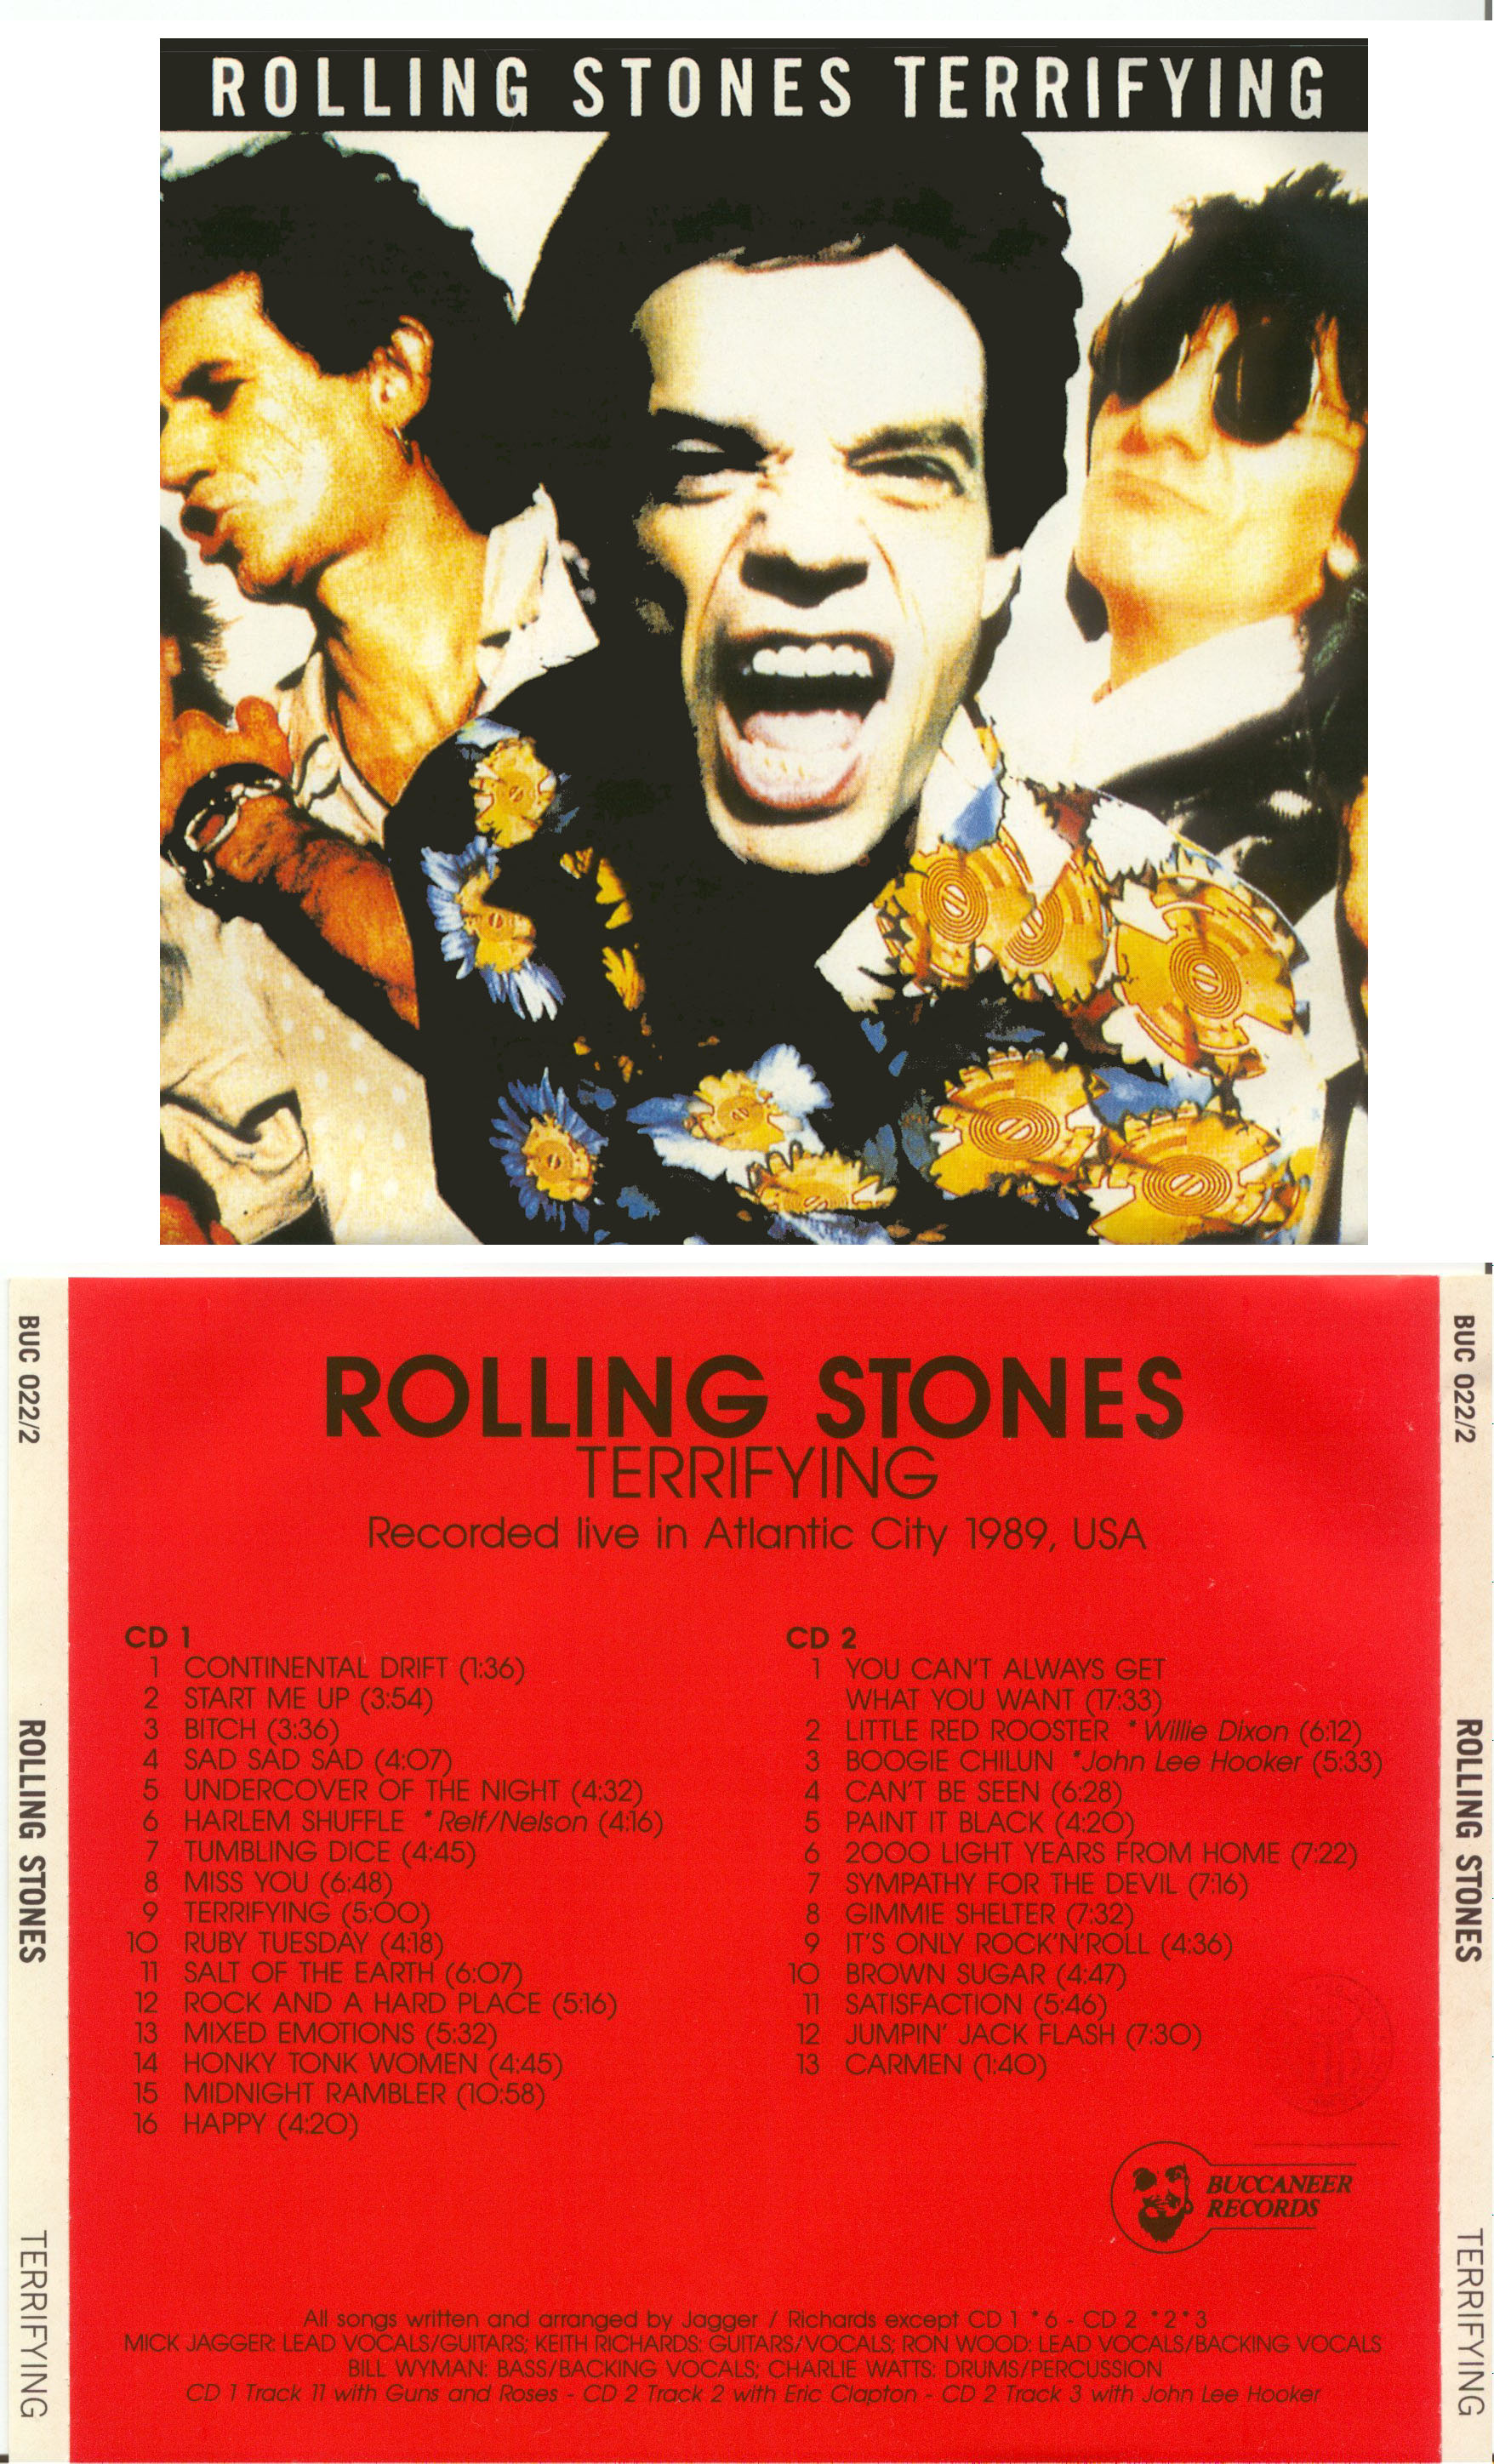 Maniac Paul S Bootlegs Rolling Stones Terrifying